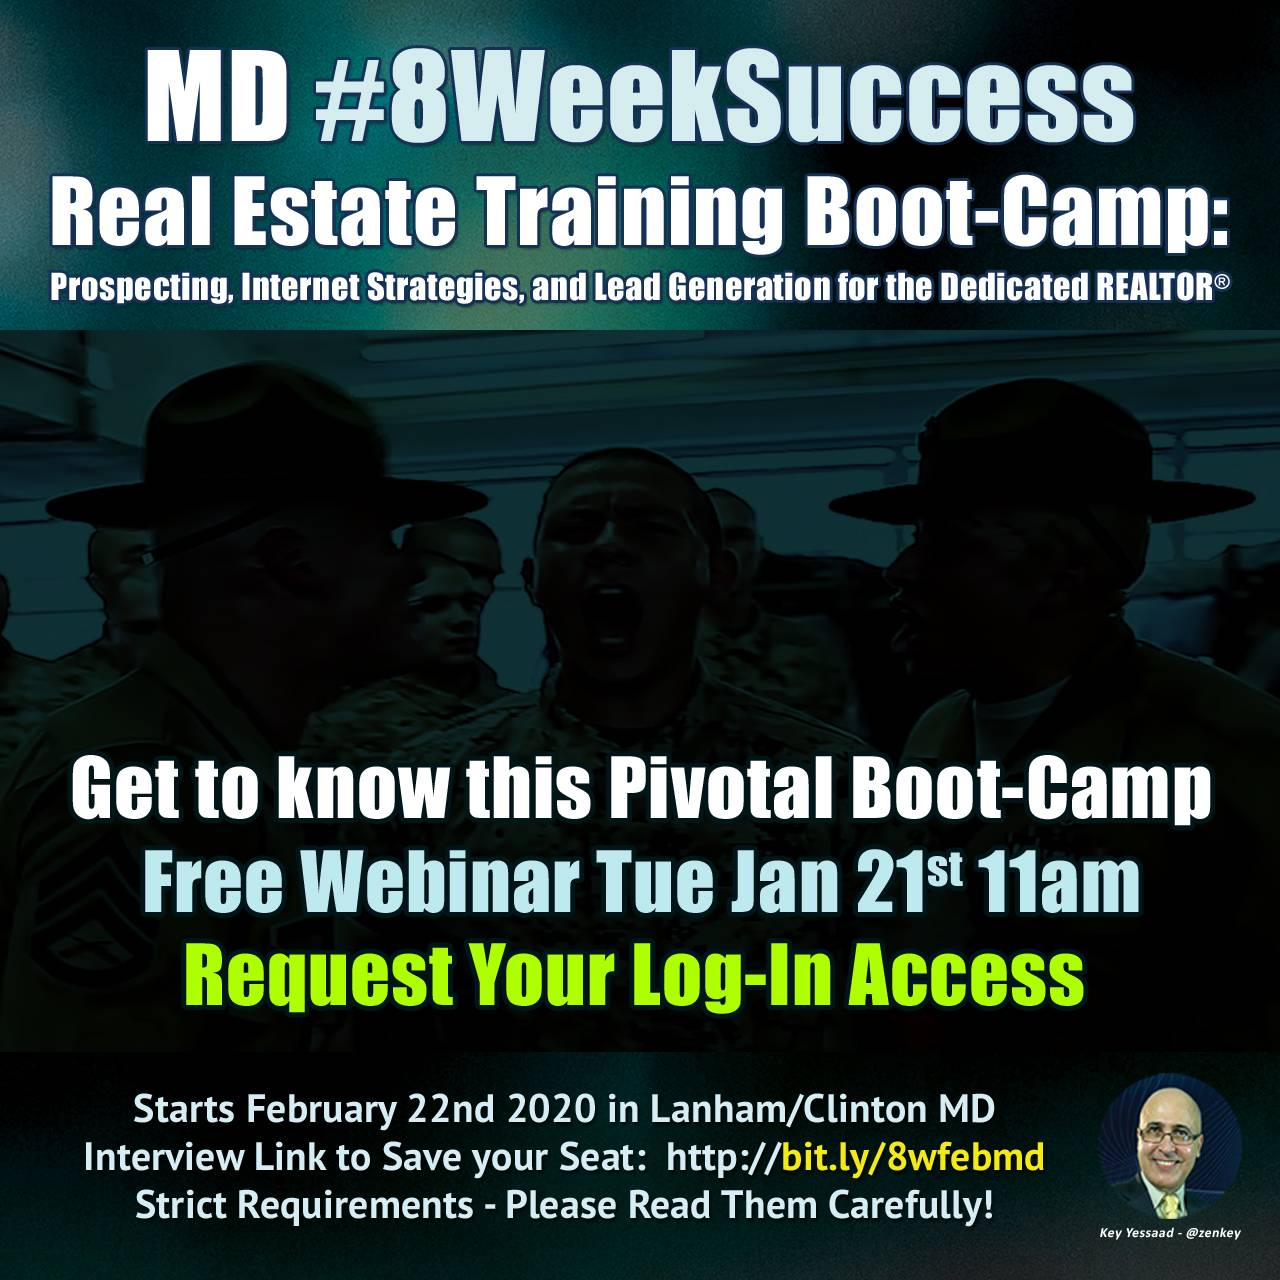 Request your Free Webinar Access Code to Get to Know the #8WeekSuccess Boot-Camp